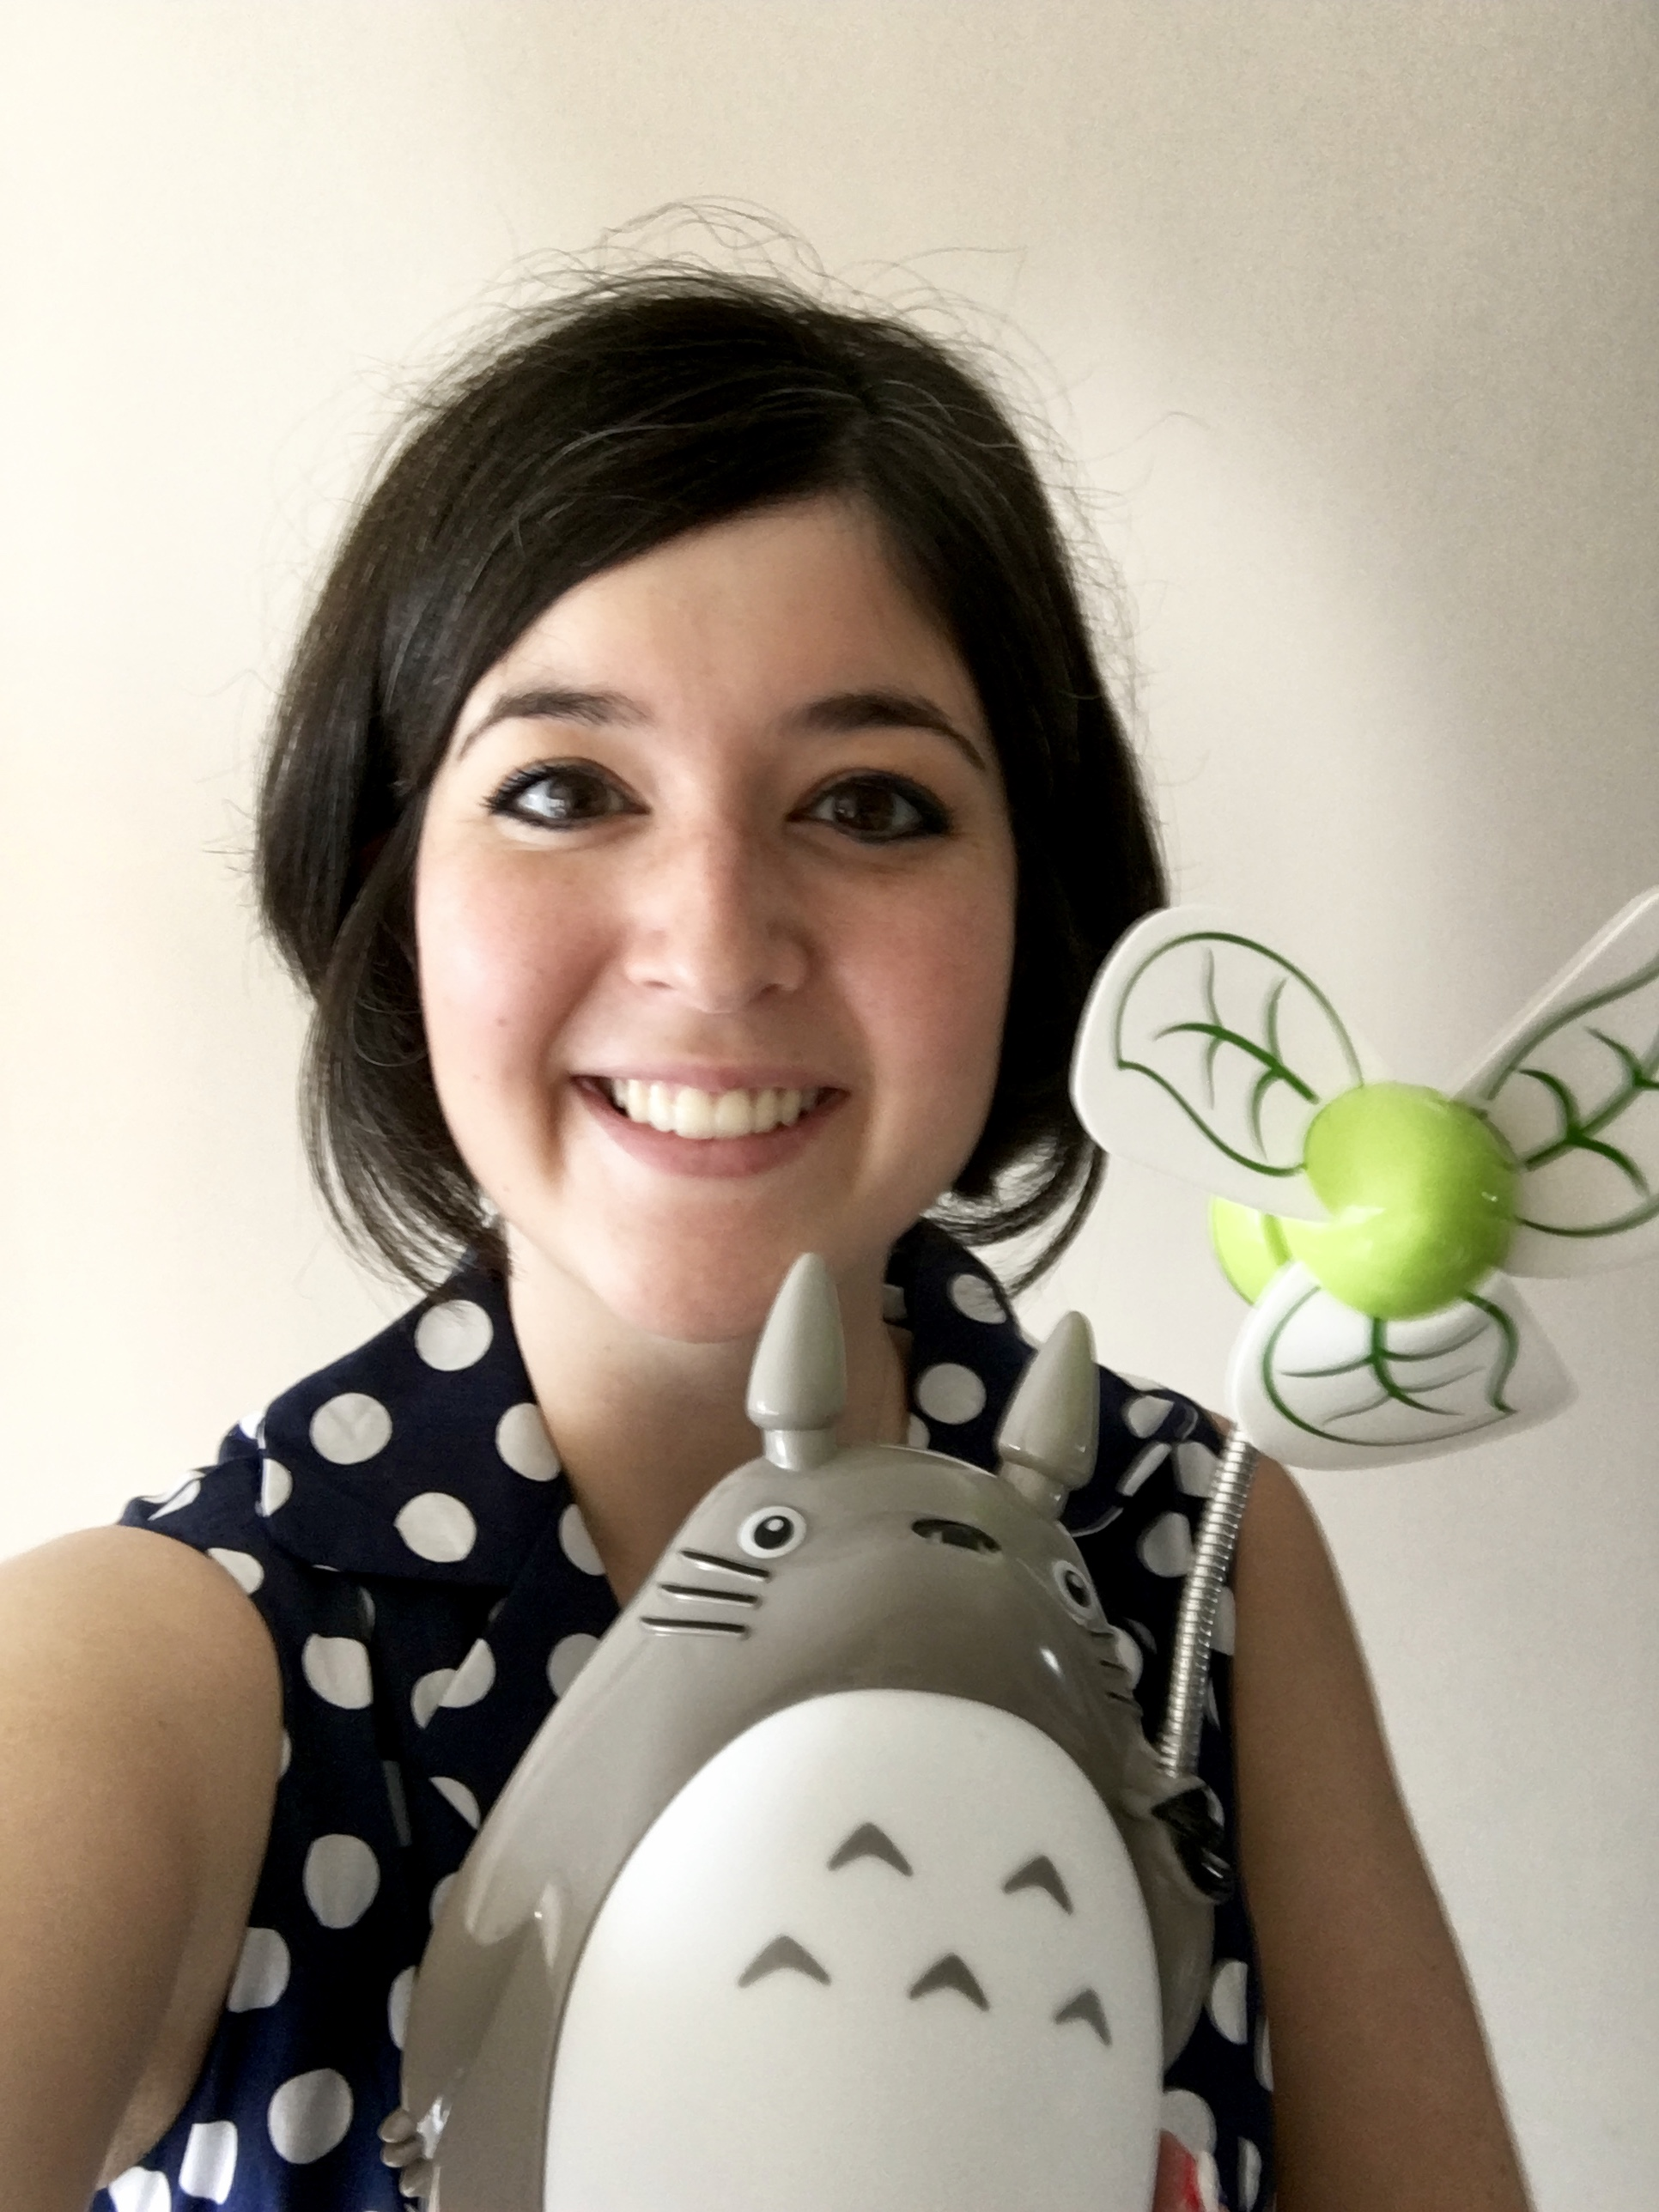 Last year's birthday in HK - best gift ever - a Totoro lamp and fan!